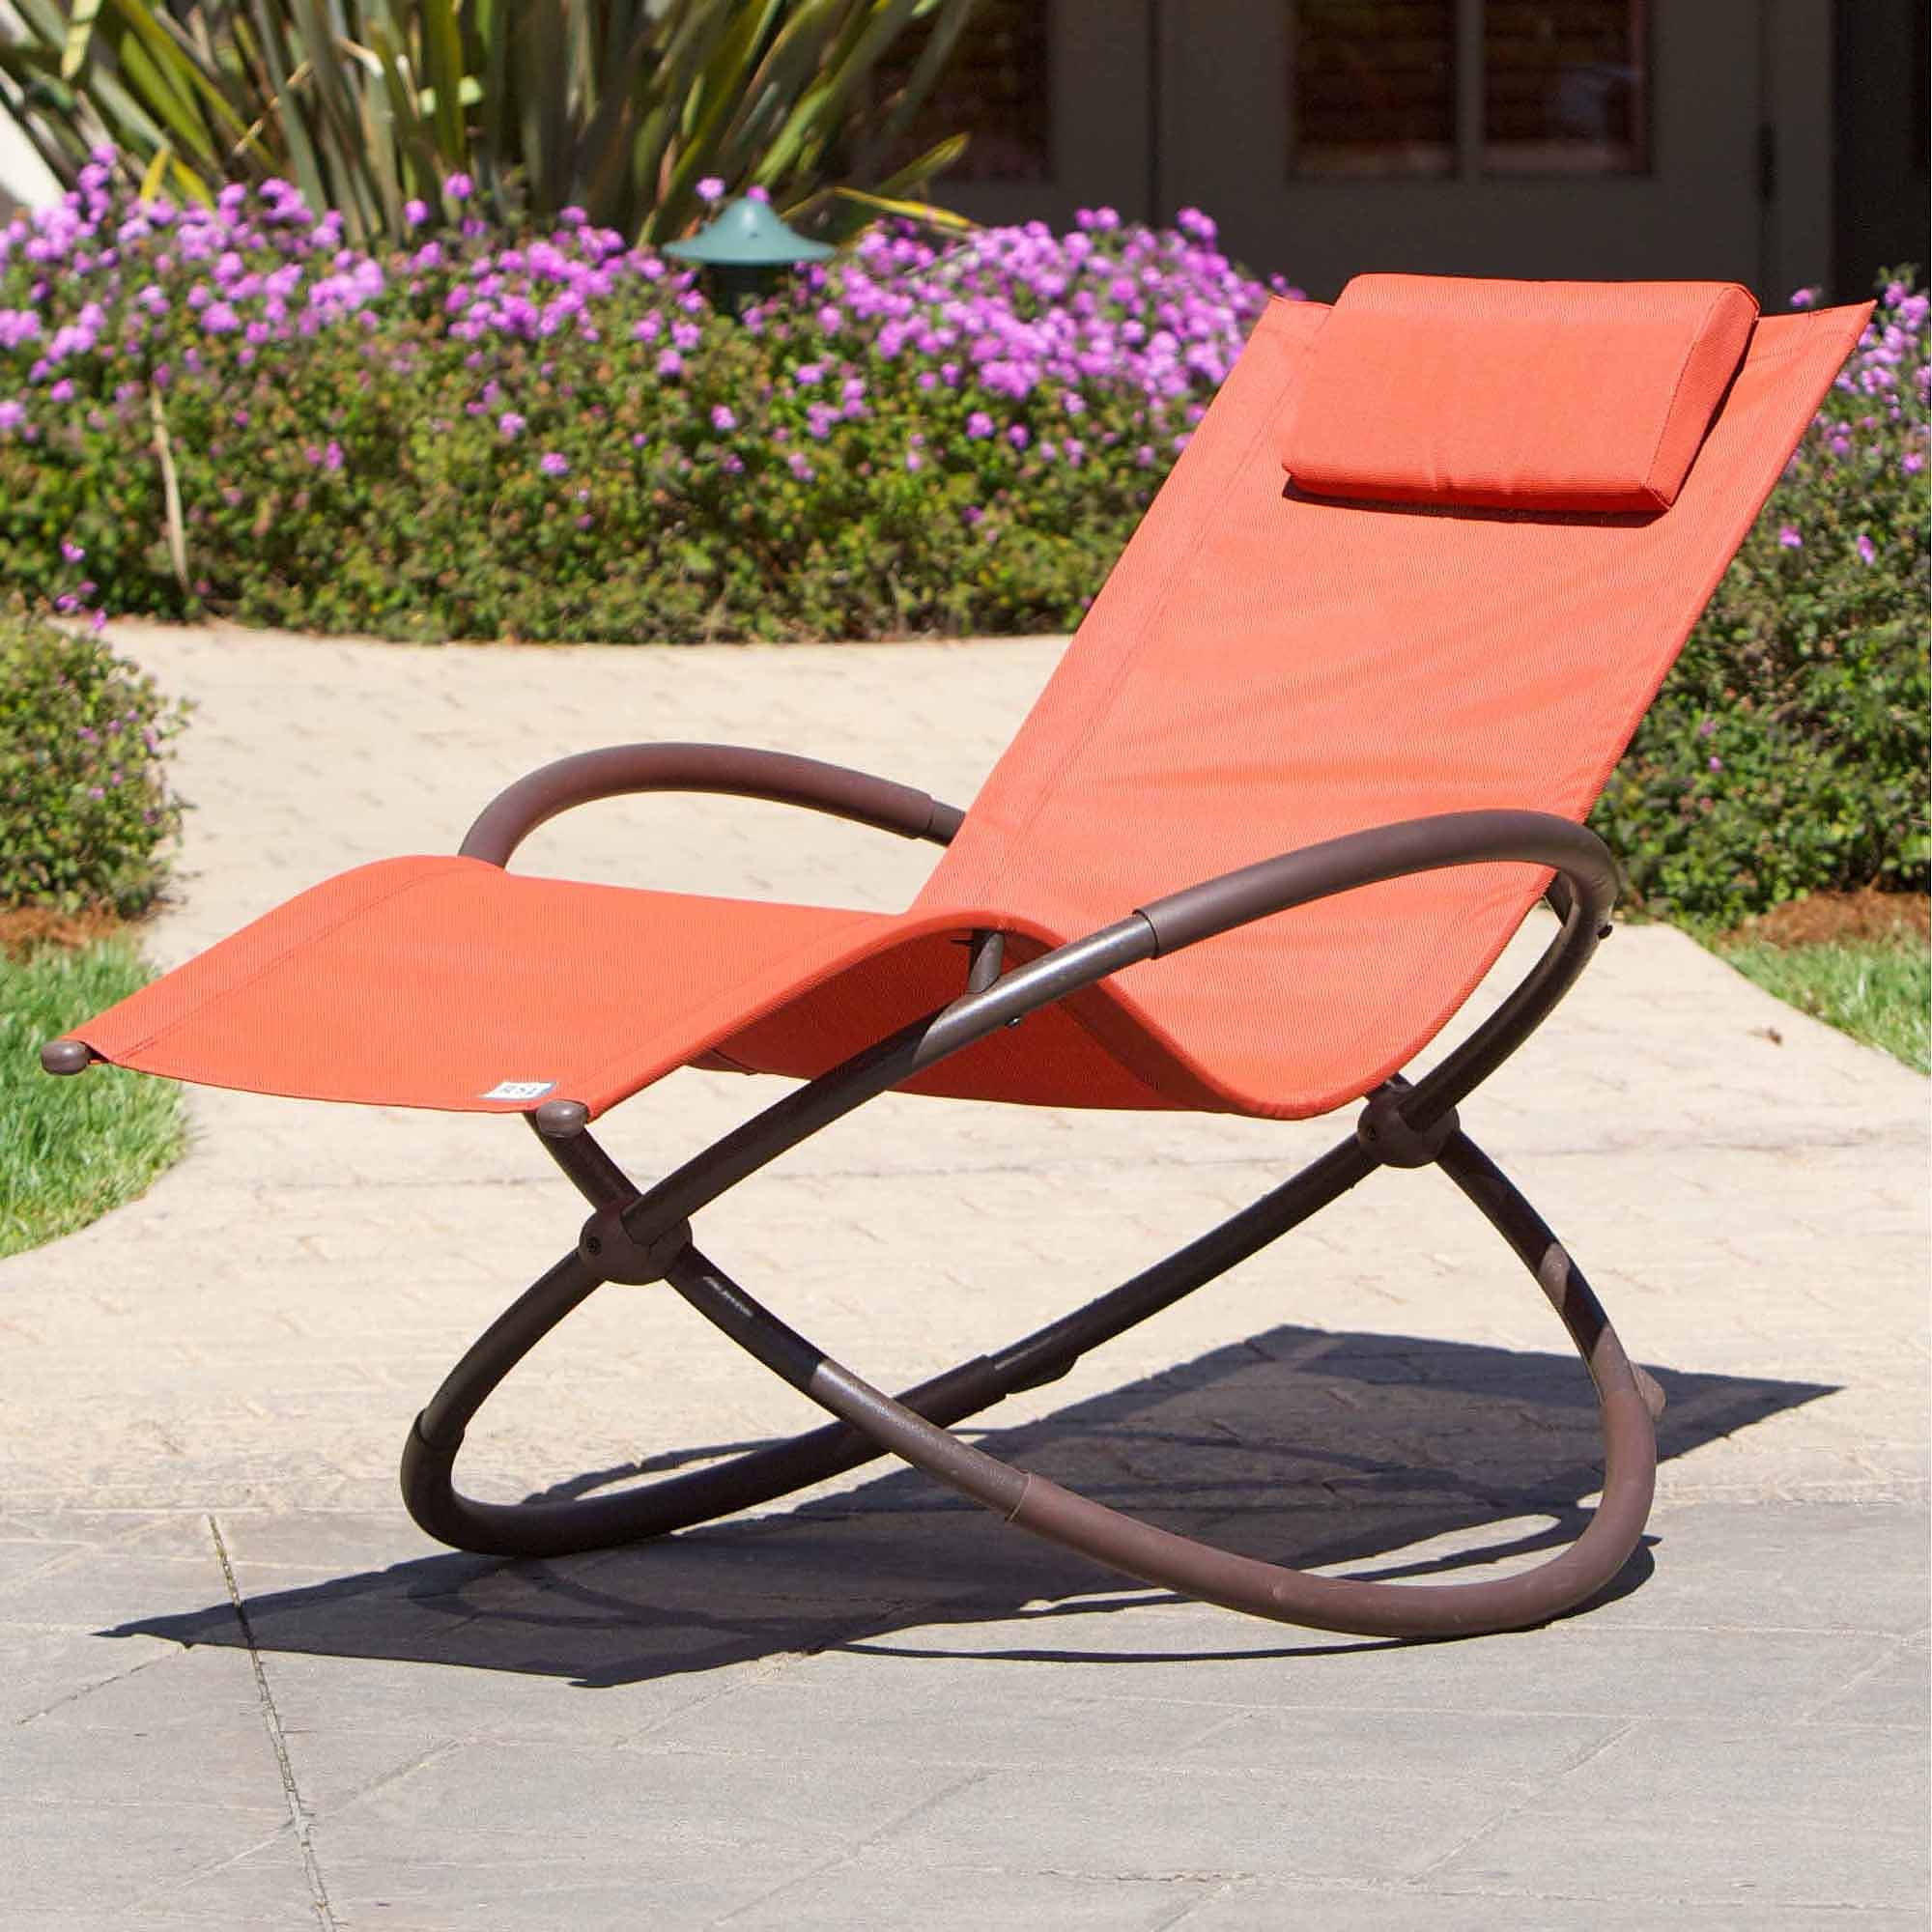 RST Brands Original Orbital Outdoor Lounger Poppy Walmart